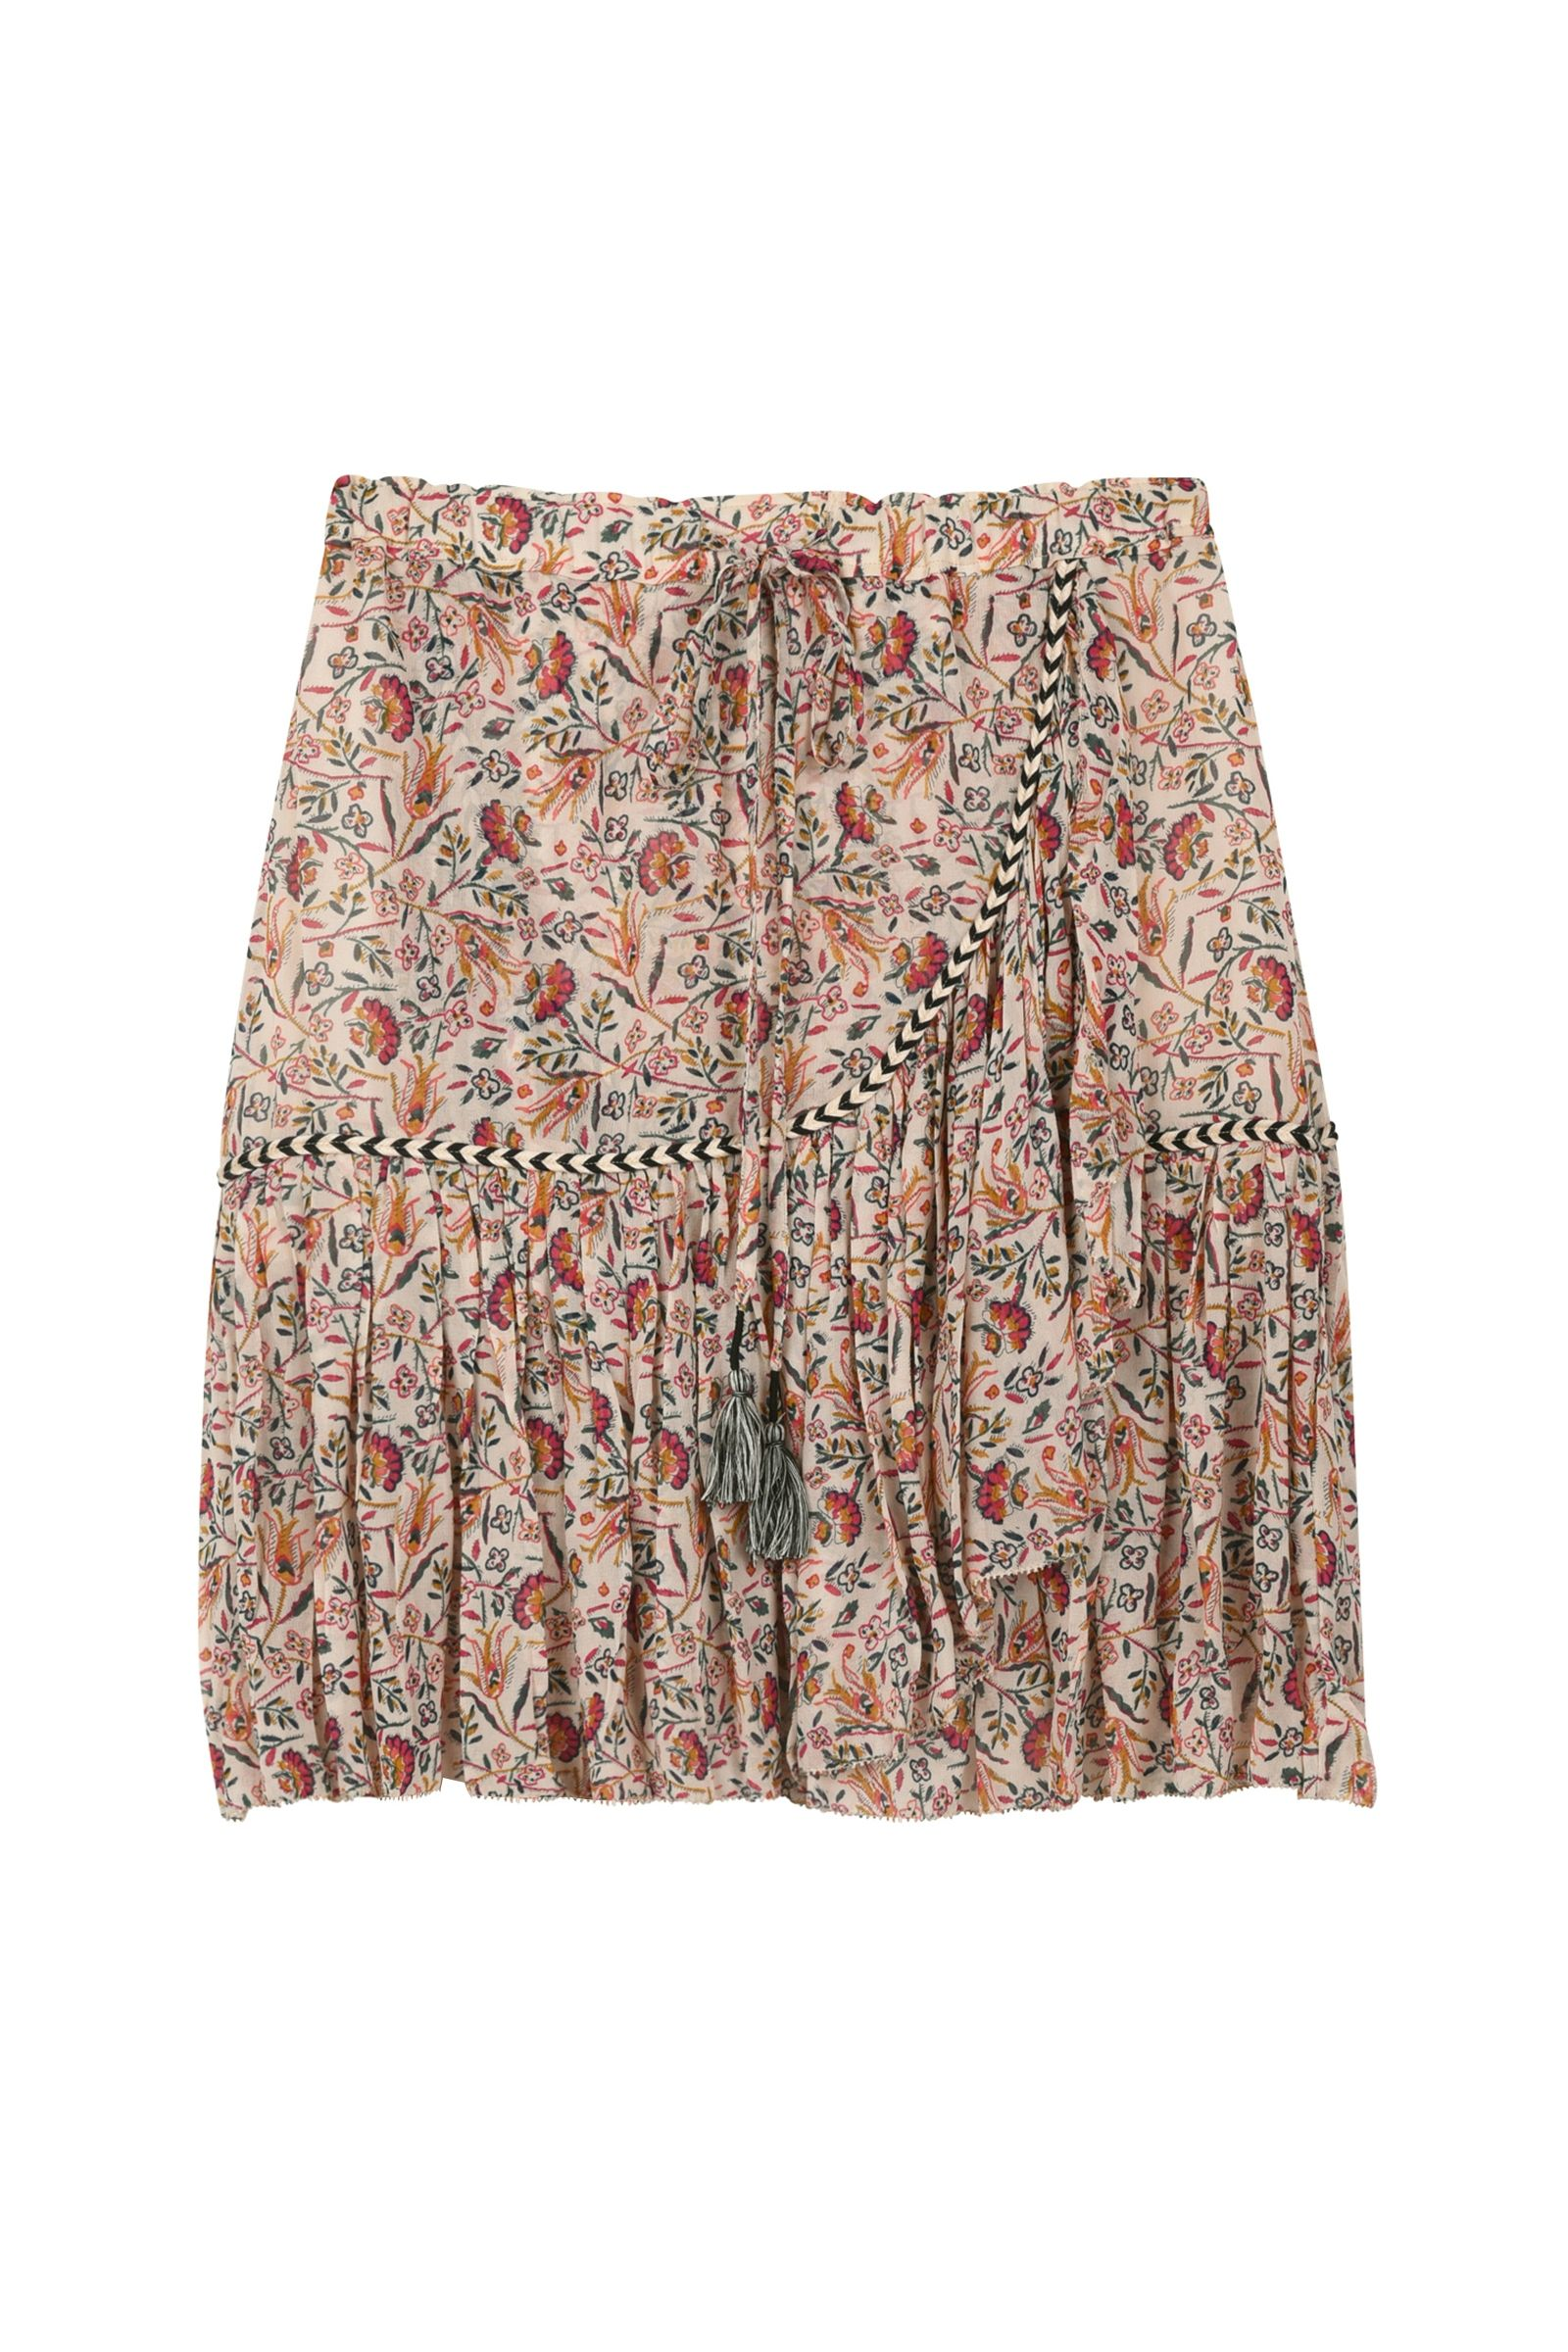 Image 4 du produit Jolly Vegetal Skirt